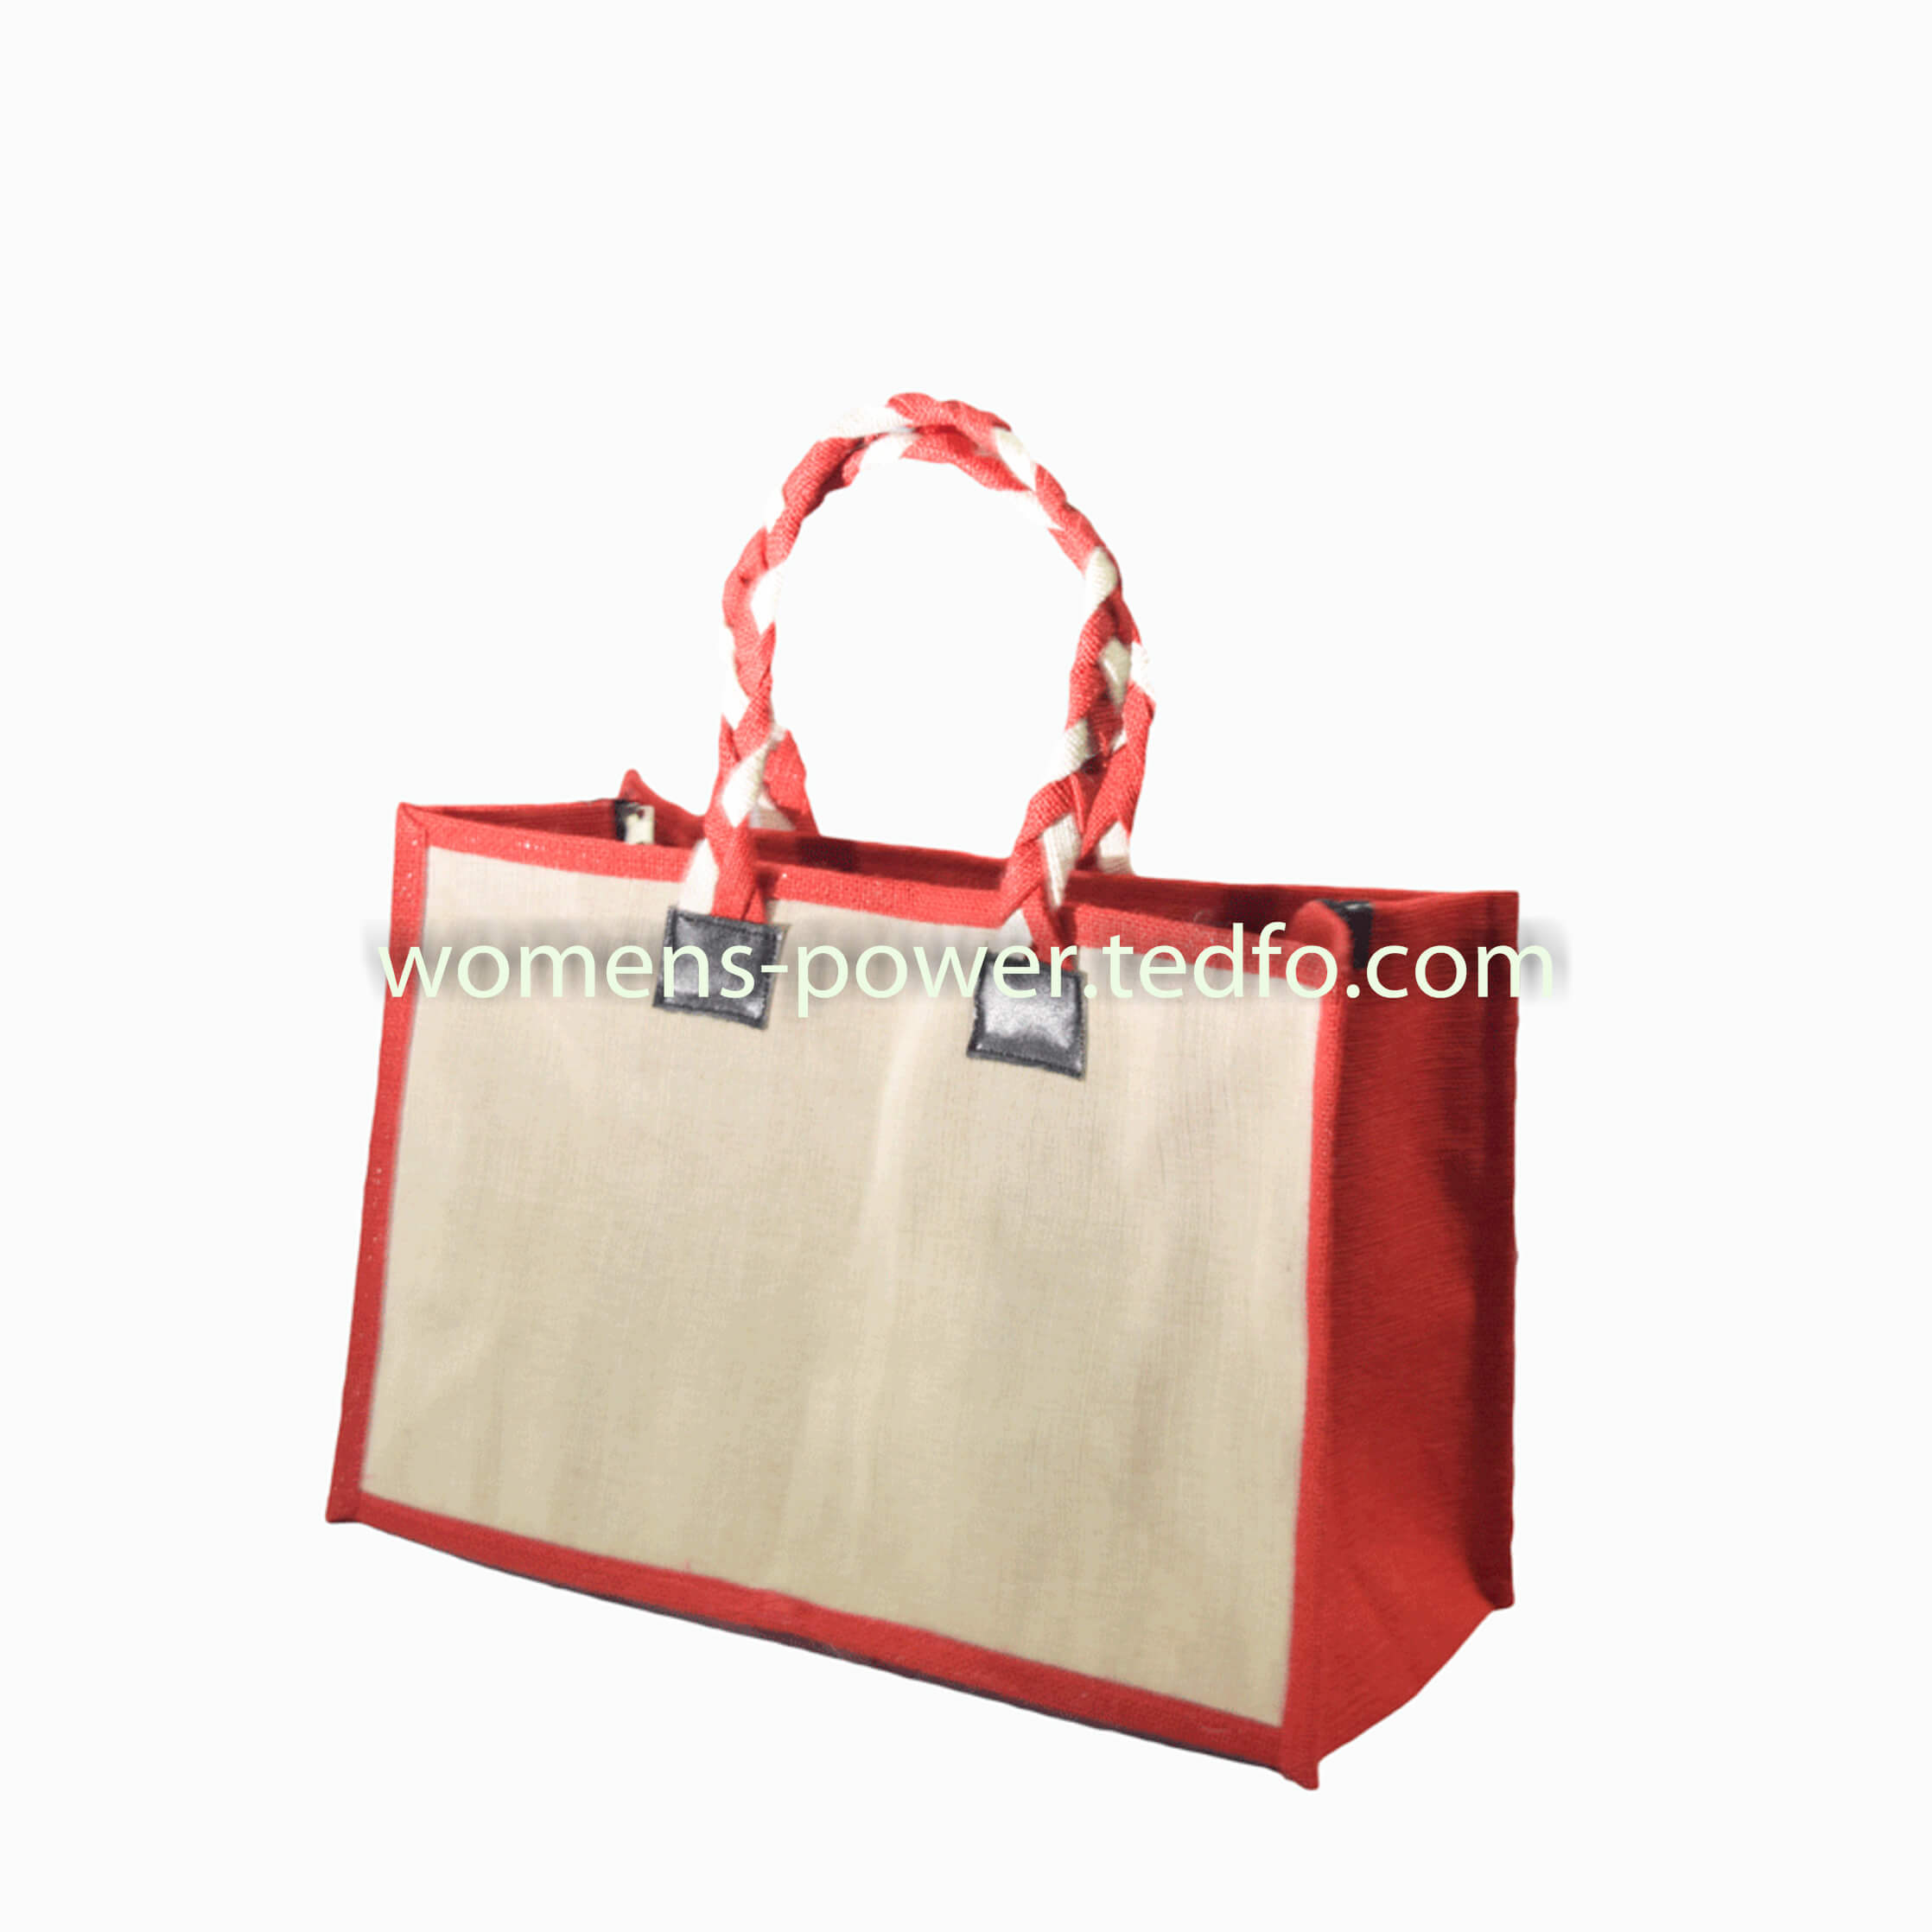 8d93a6a8e Jute Made Bangladesh Shopping Bag, Red Colored Border,Natural Jute Colored  Body,Laces